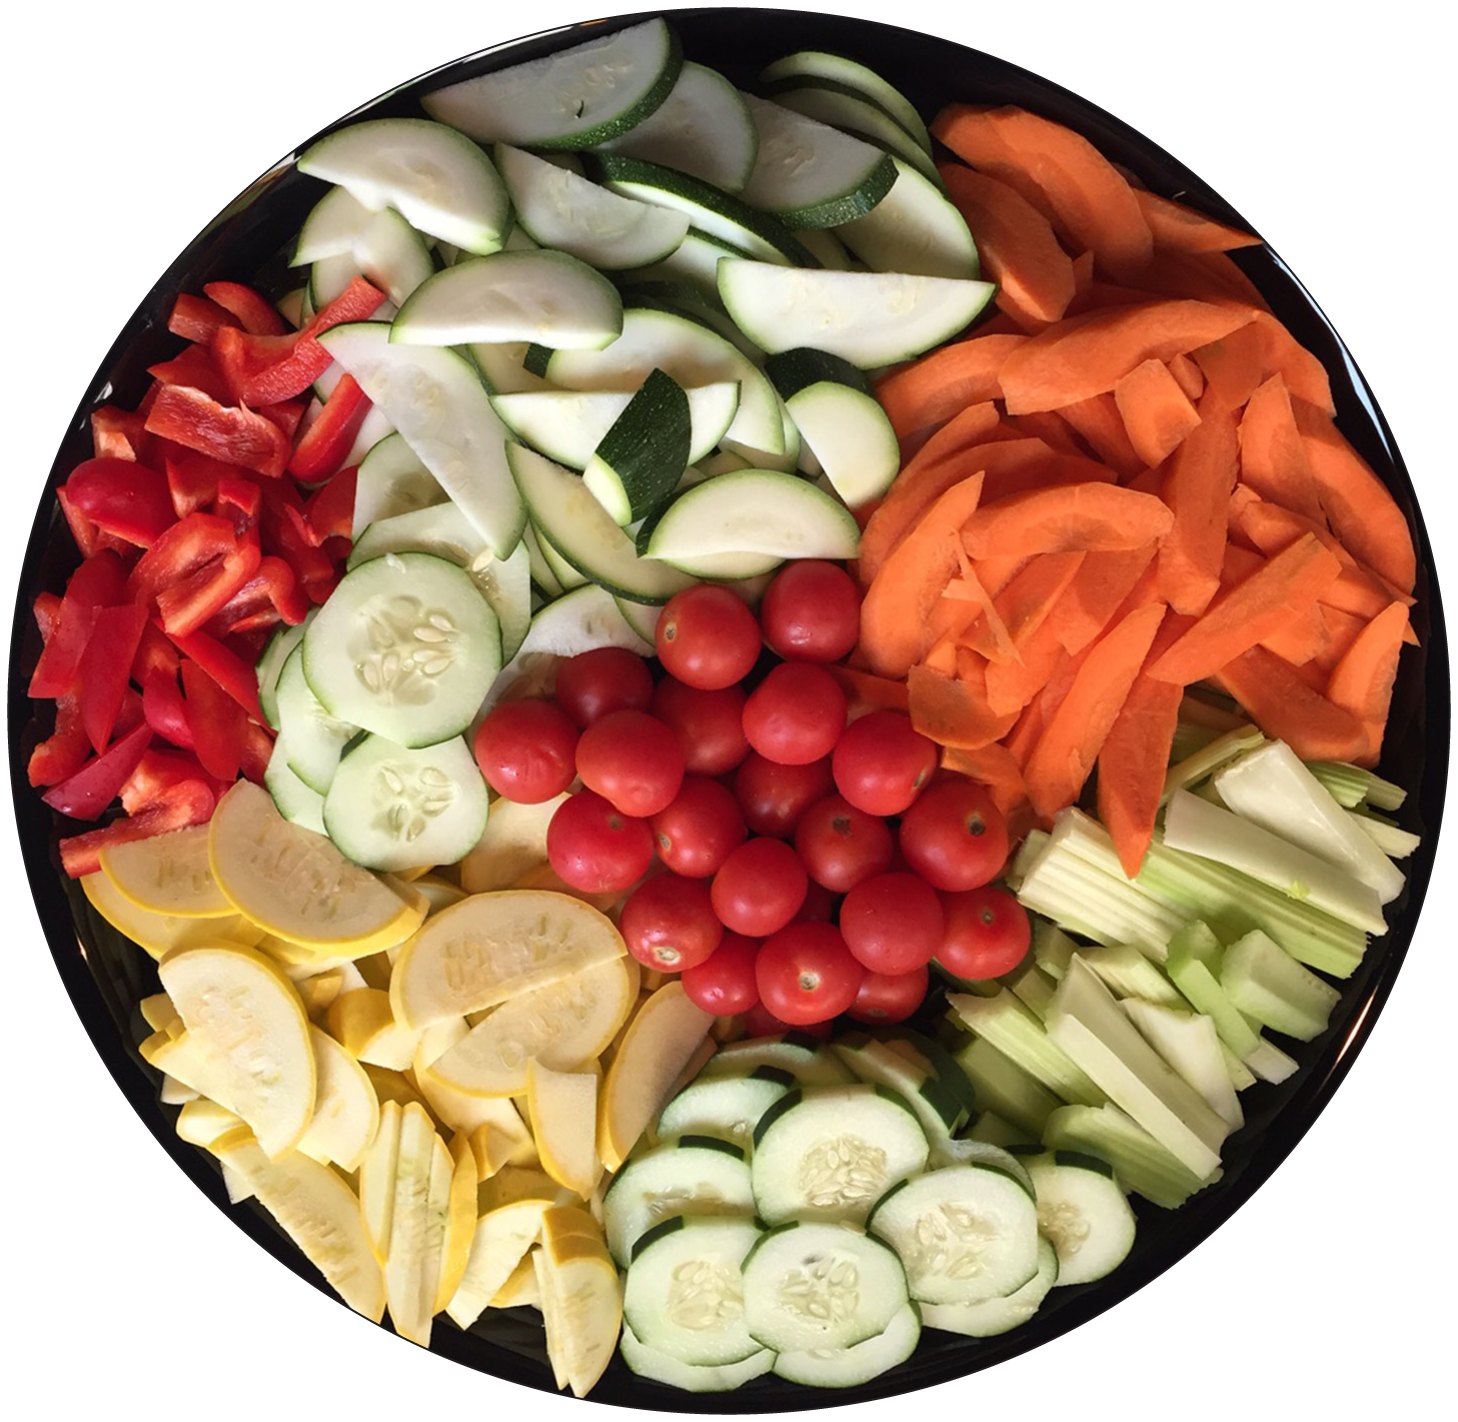 veggie tray.png